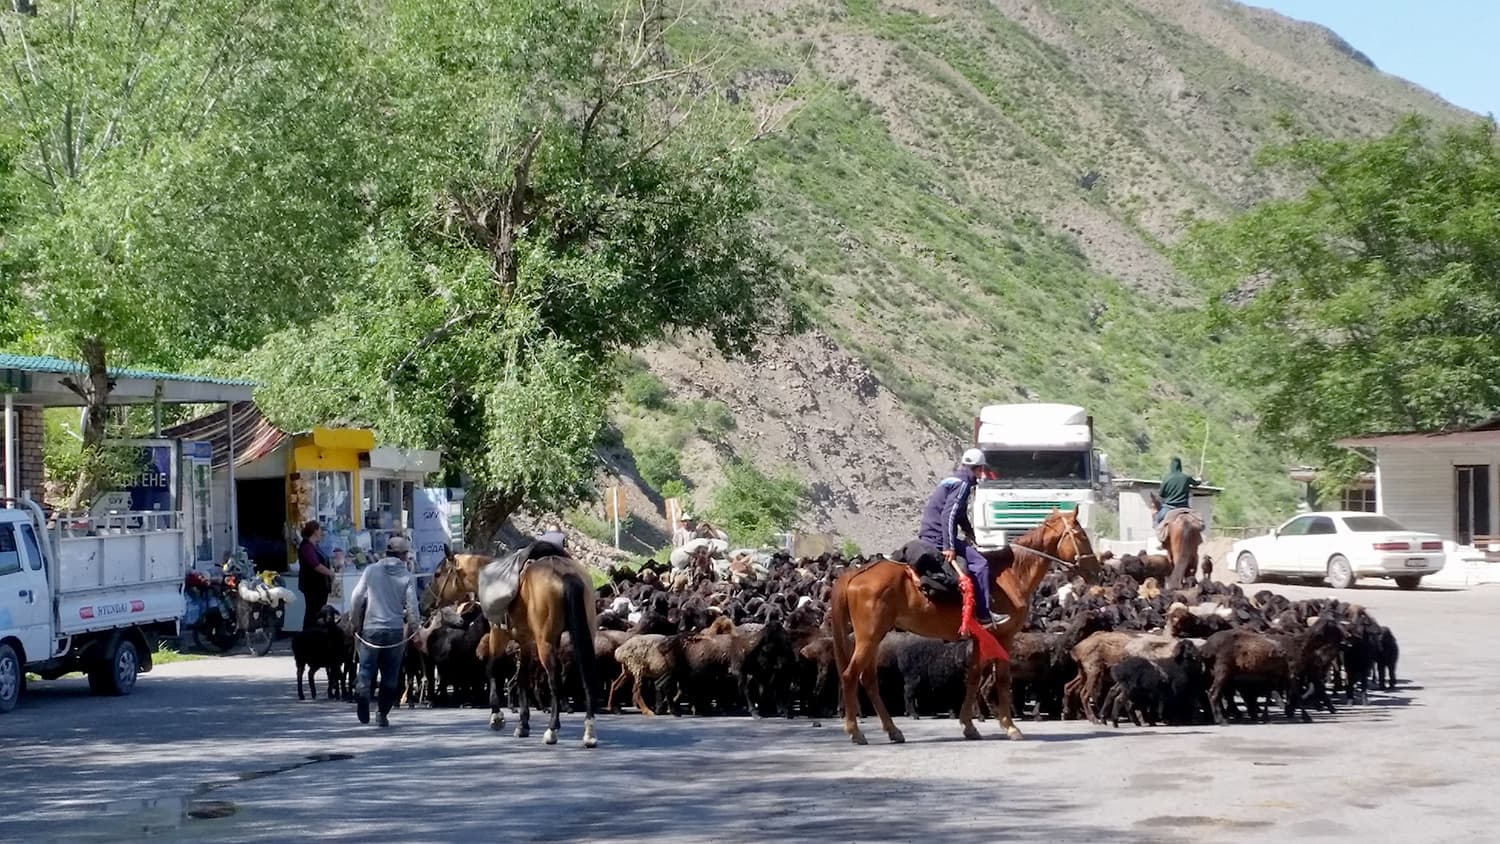 A 'traffic jam' in Kyrgyzstan.